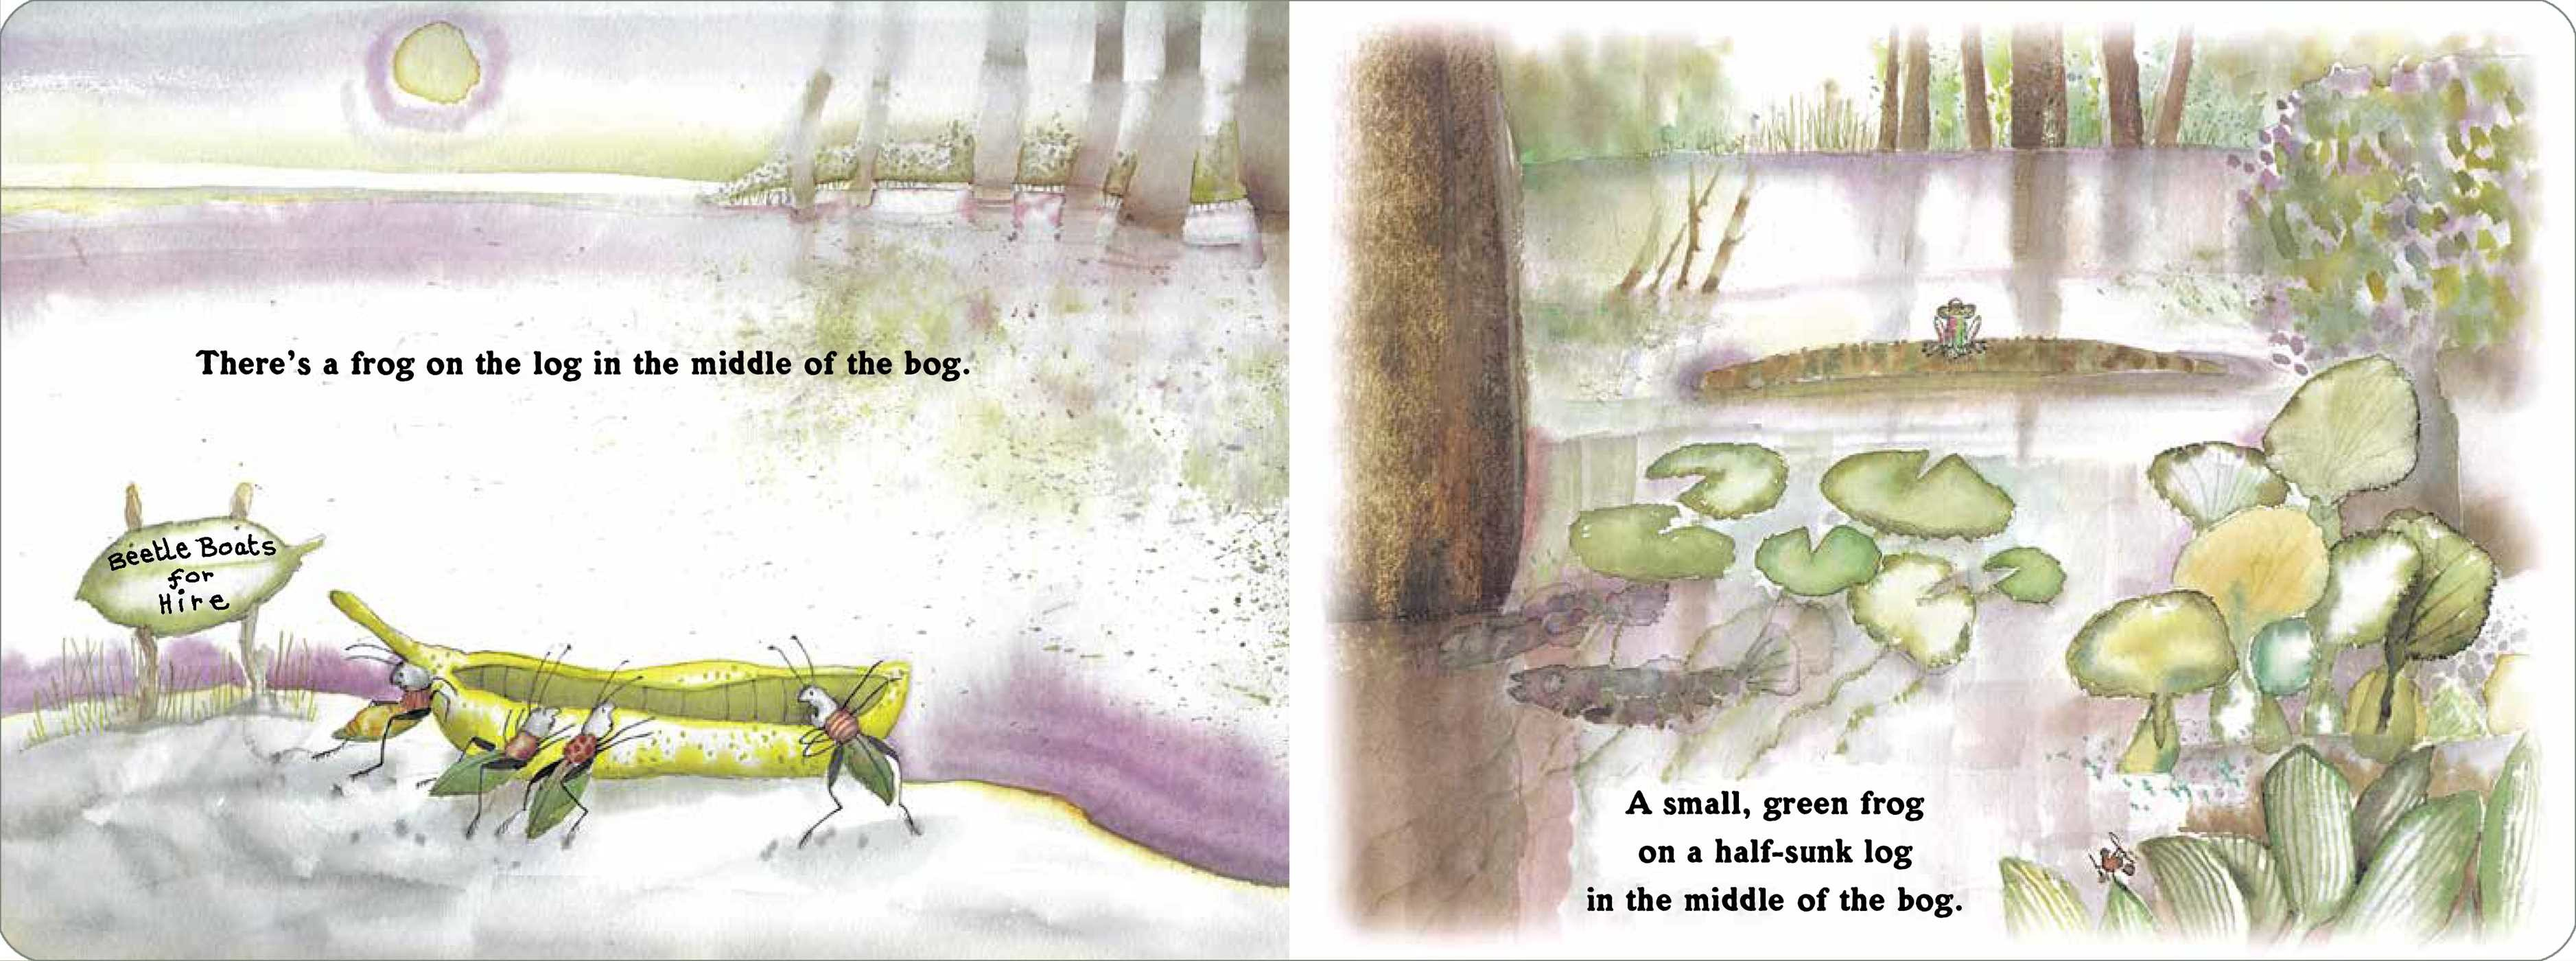 A frog in the bog 9781481444521.in01